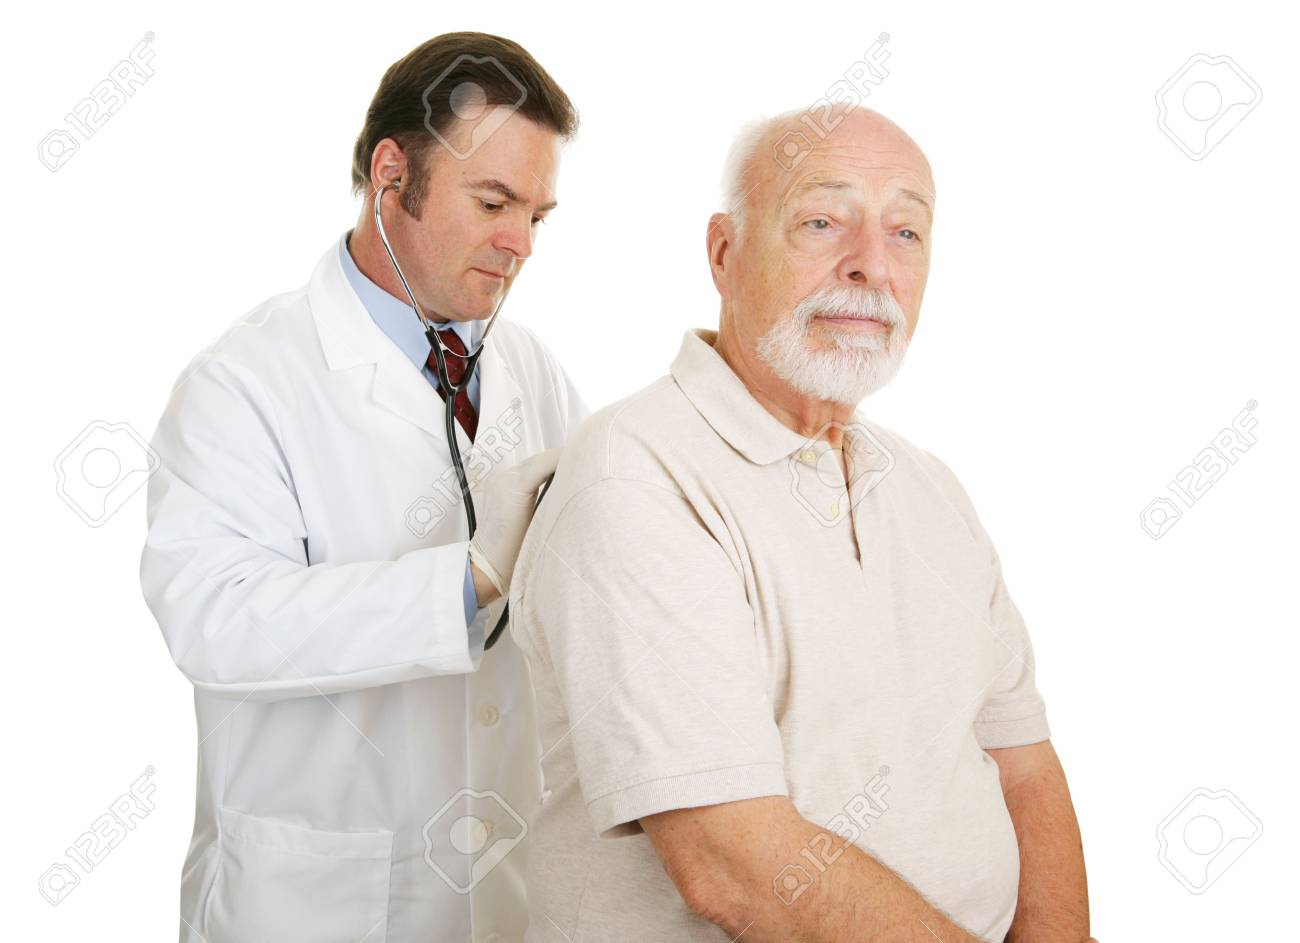 Doctor examining senior man.  Both have serious expressions.  Isolated on white. Stock Photo - 2576467